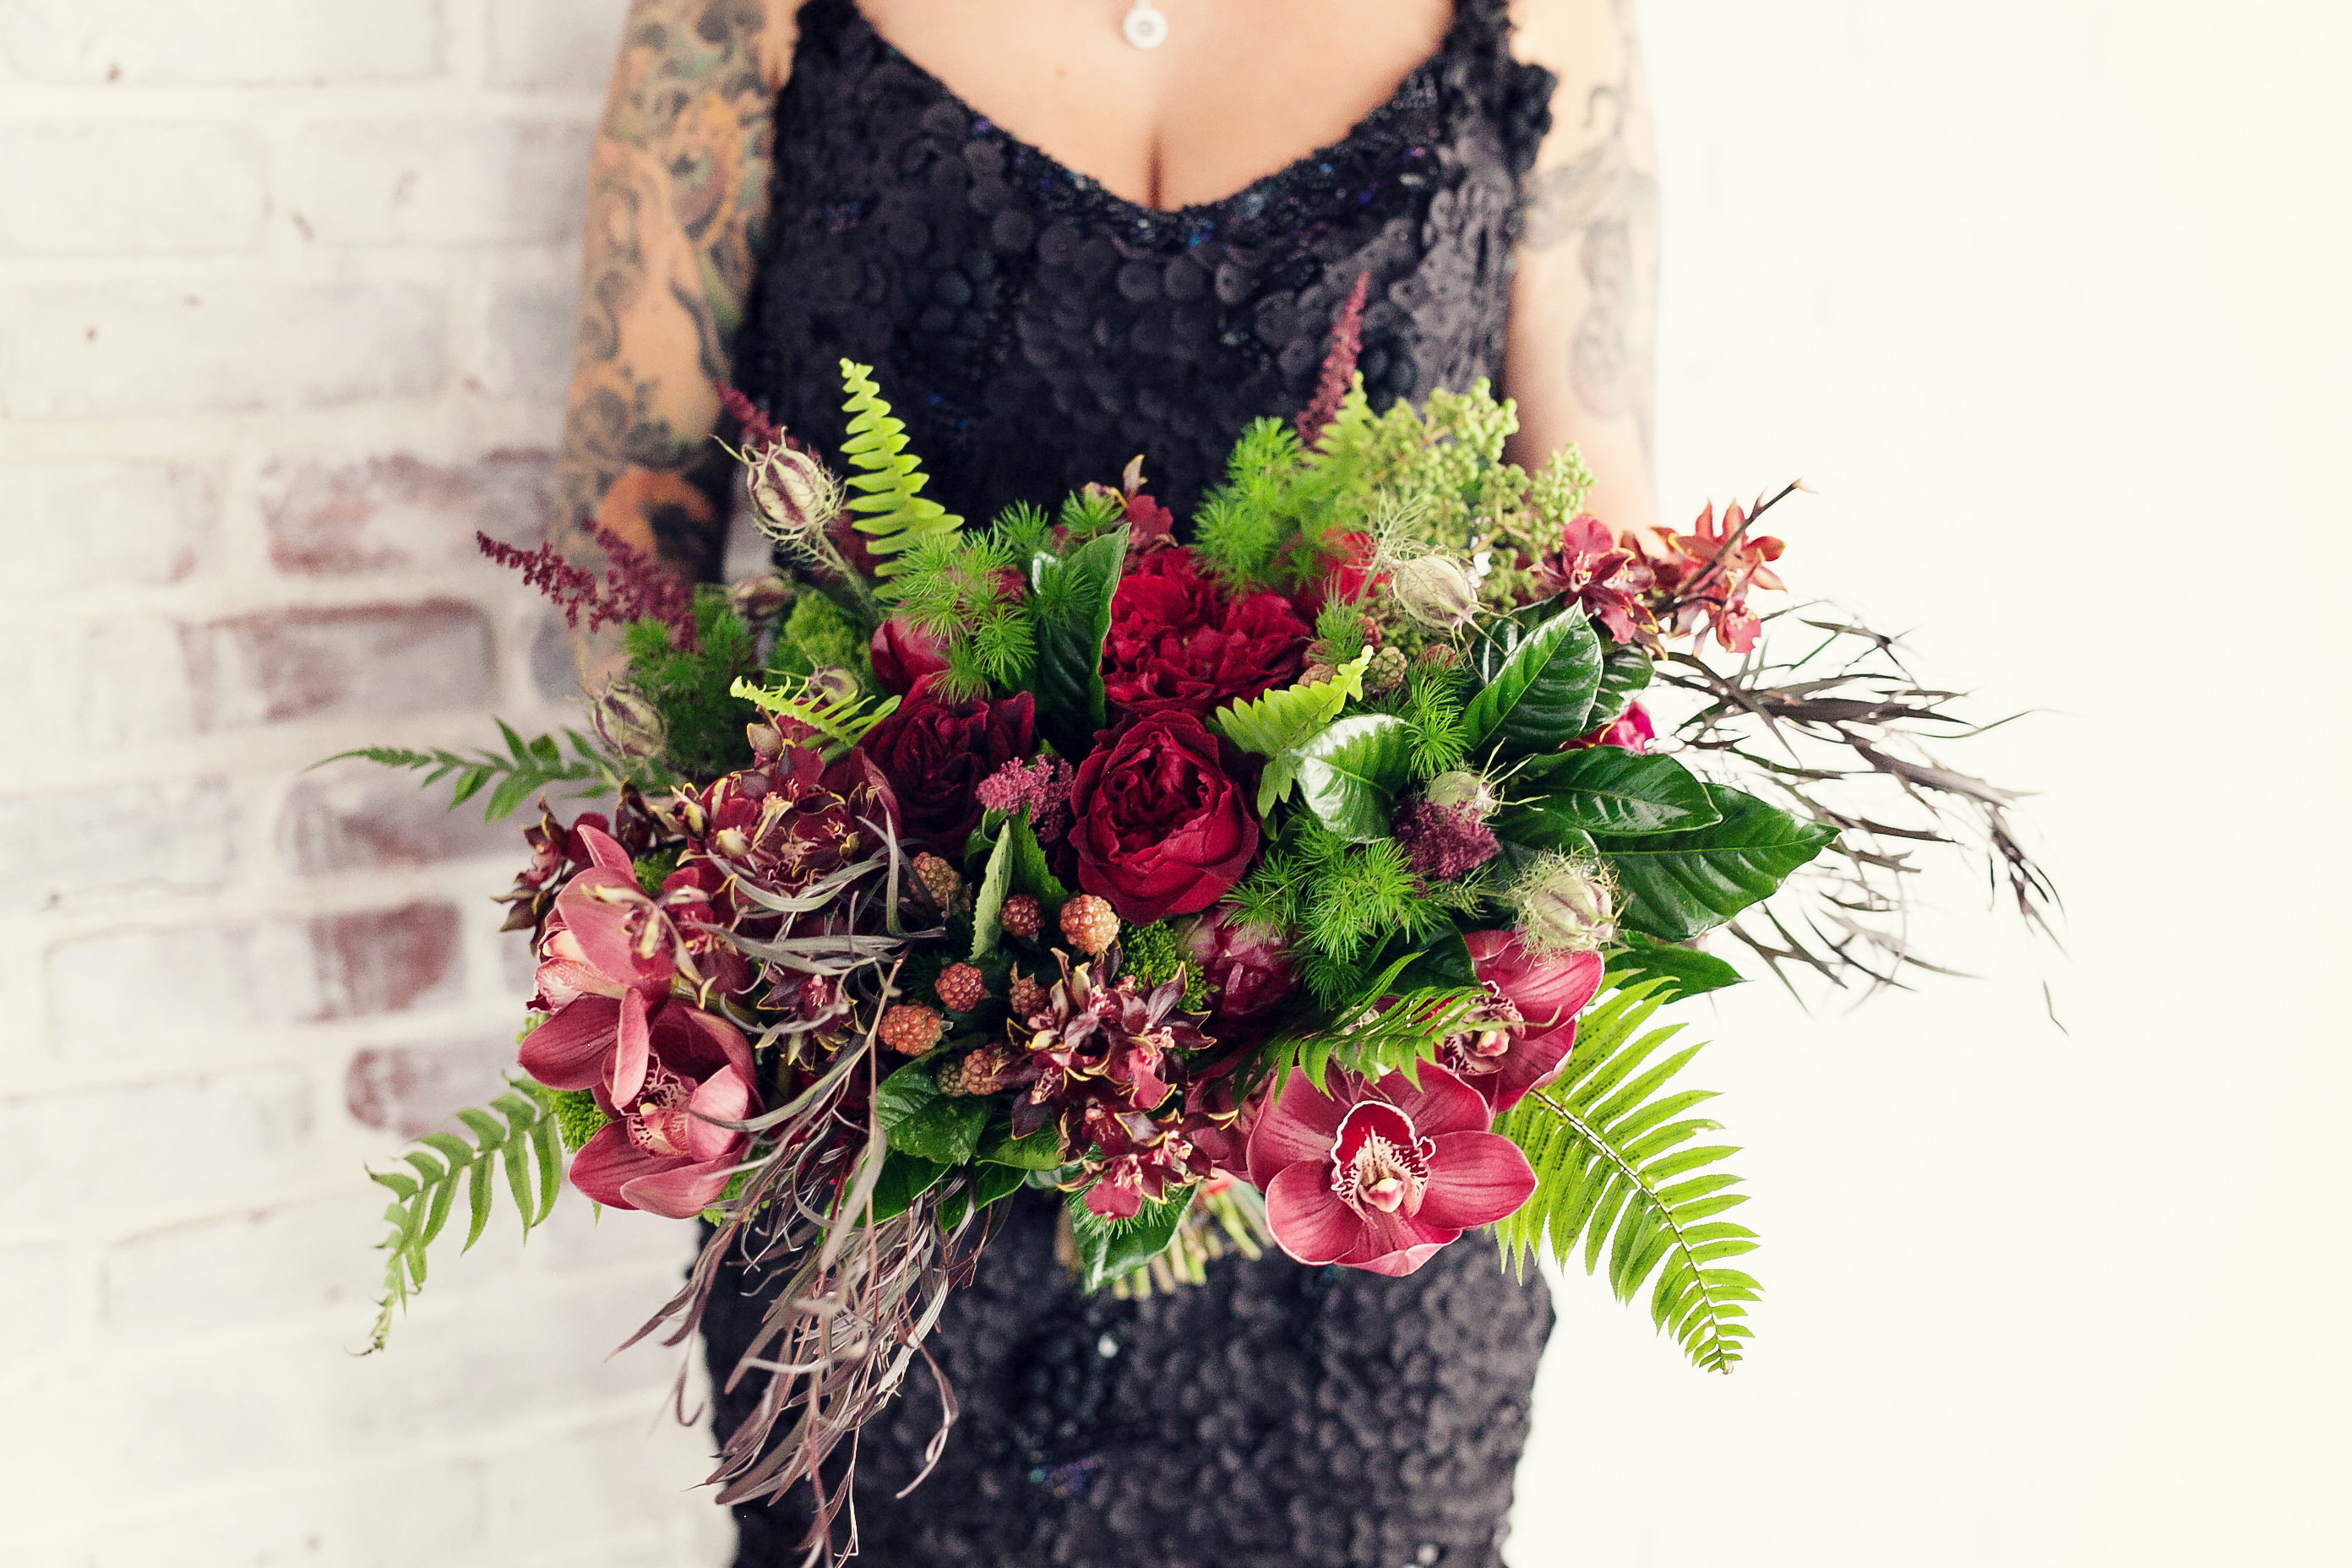 Halloween weddings 17 ways to bring gothic style to your wedding red flowers and greenery izmirmasajfo Choice Image